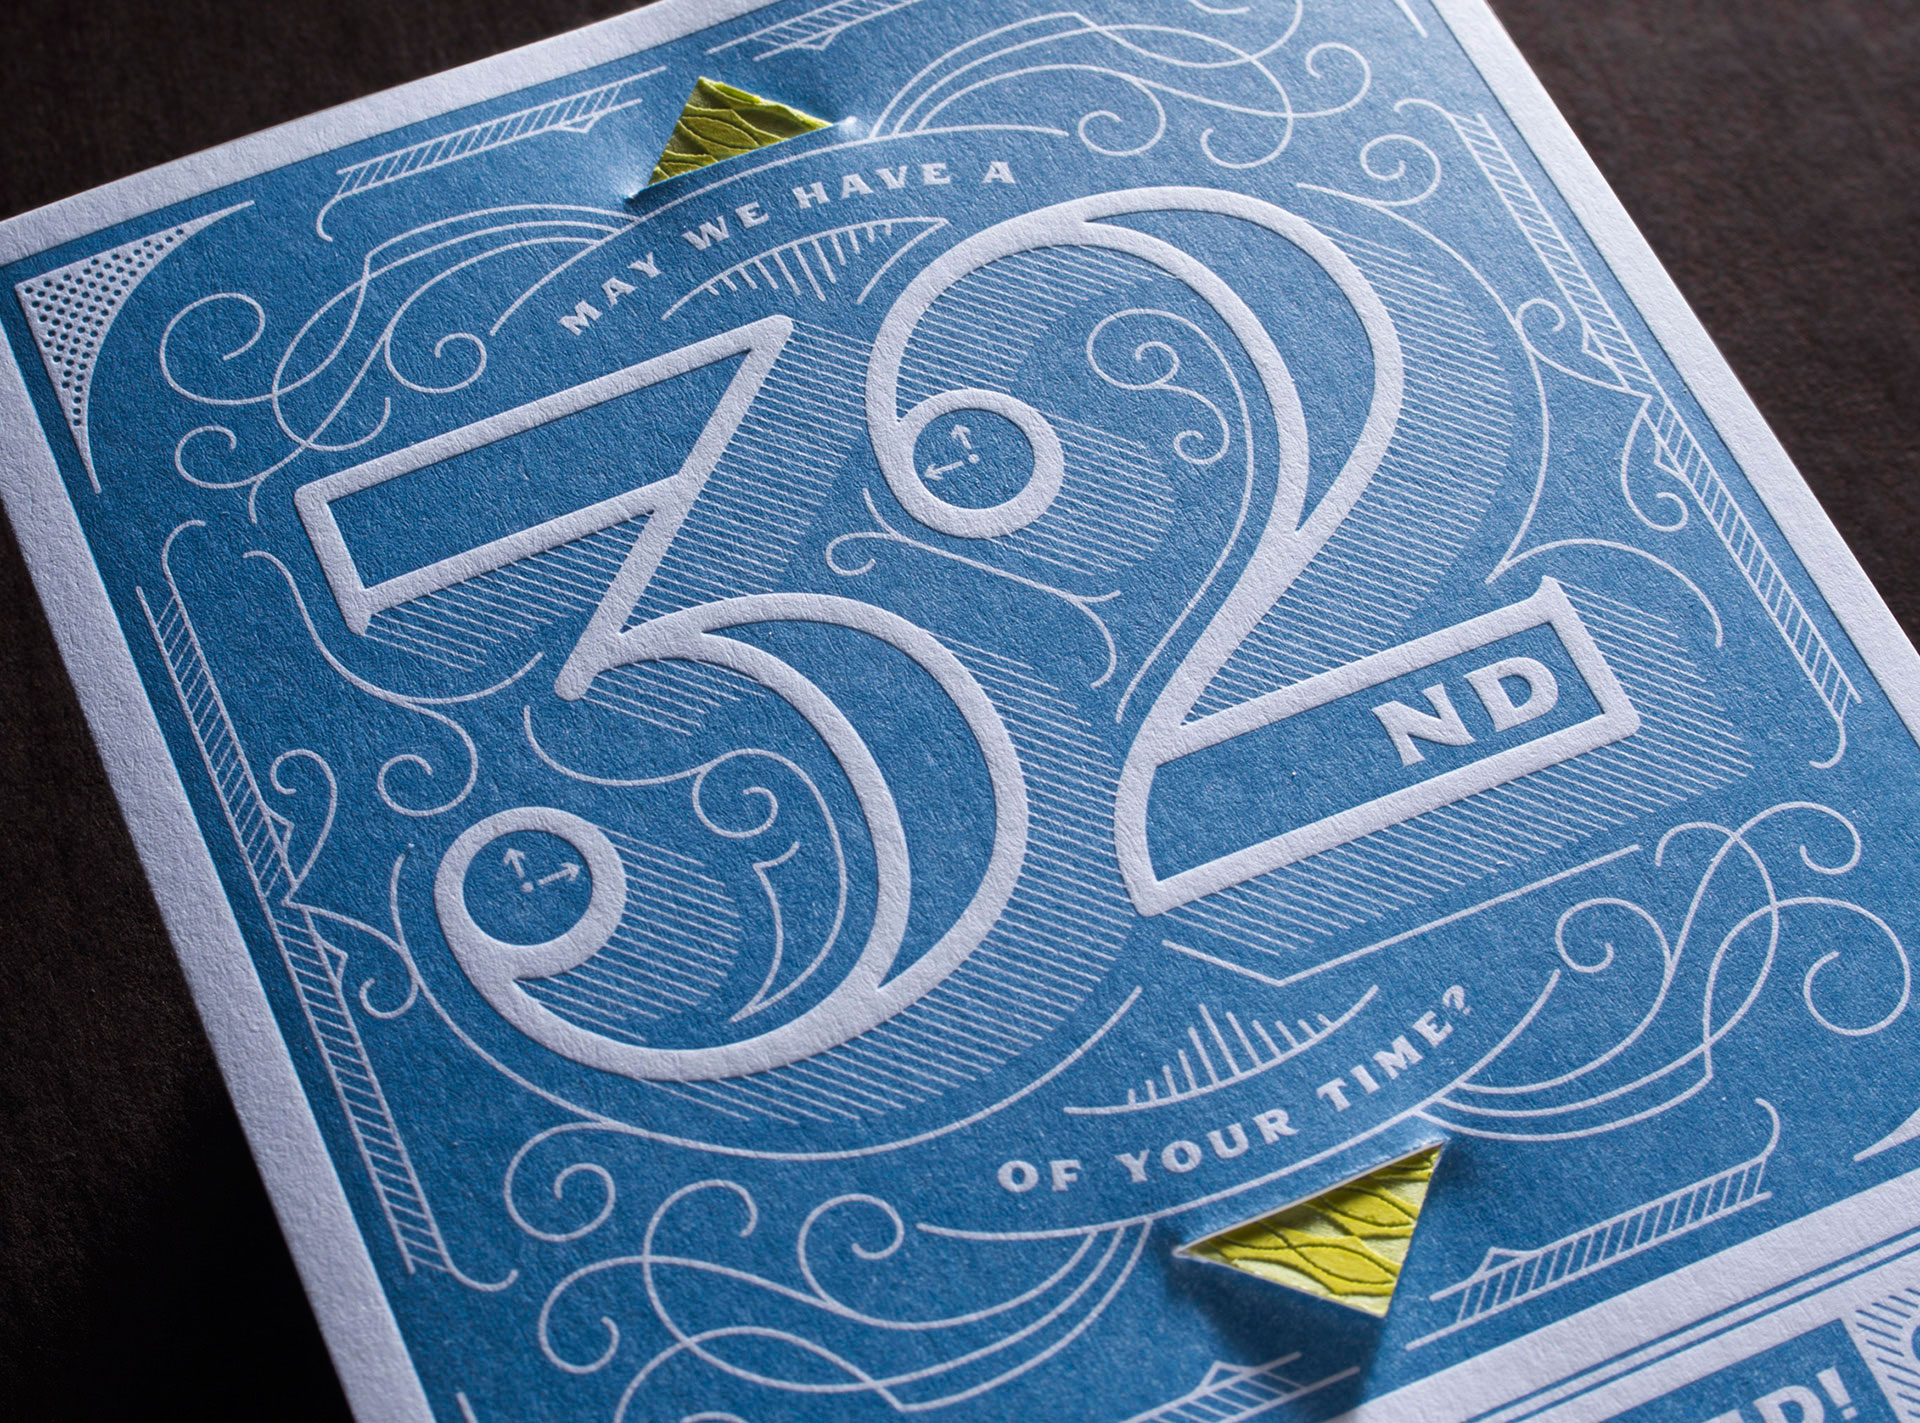 831-enzed-3